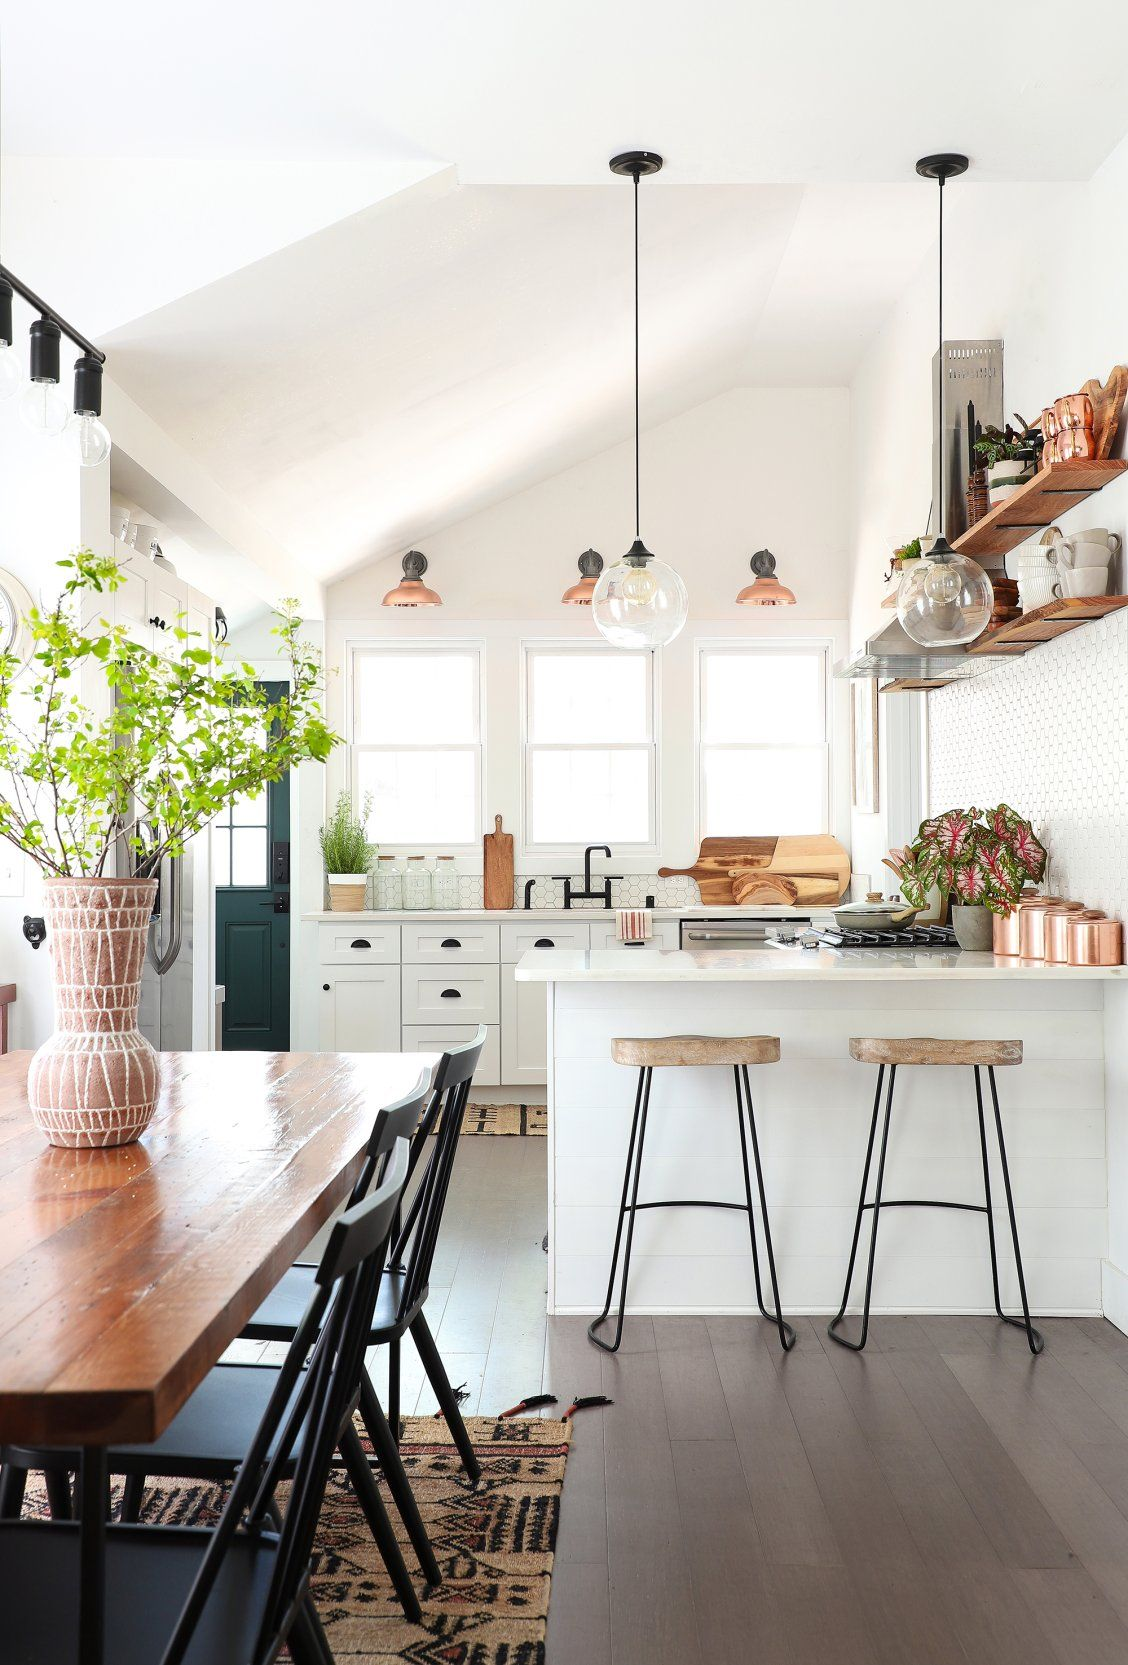 How This DIY Blogger Transformed Her Dilapidated Fixer-Upper | home ...